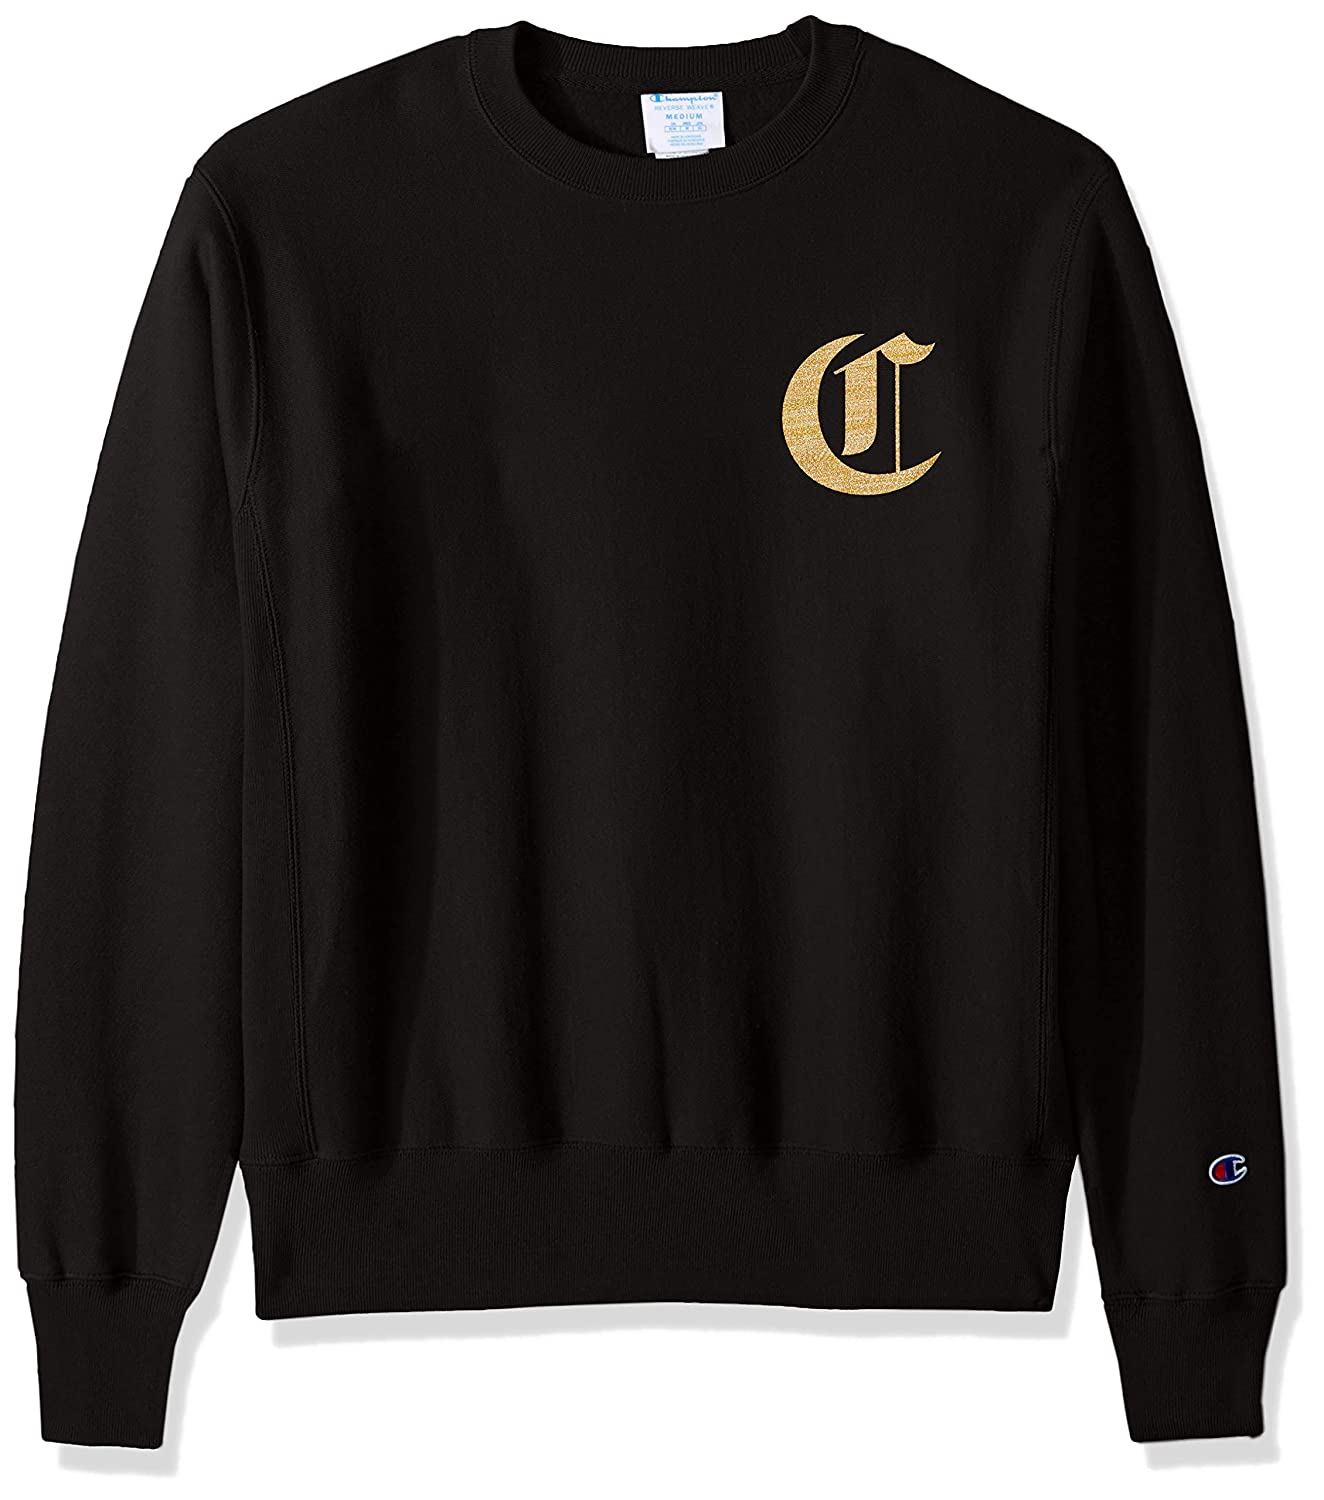 noir W  Old English Lettebague 3X-grand Champion Sweat-Shirt Homme